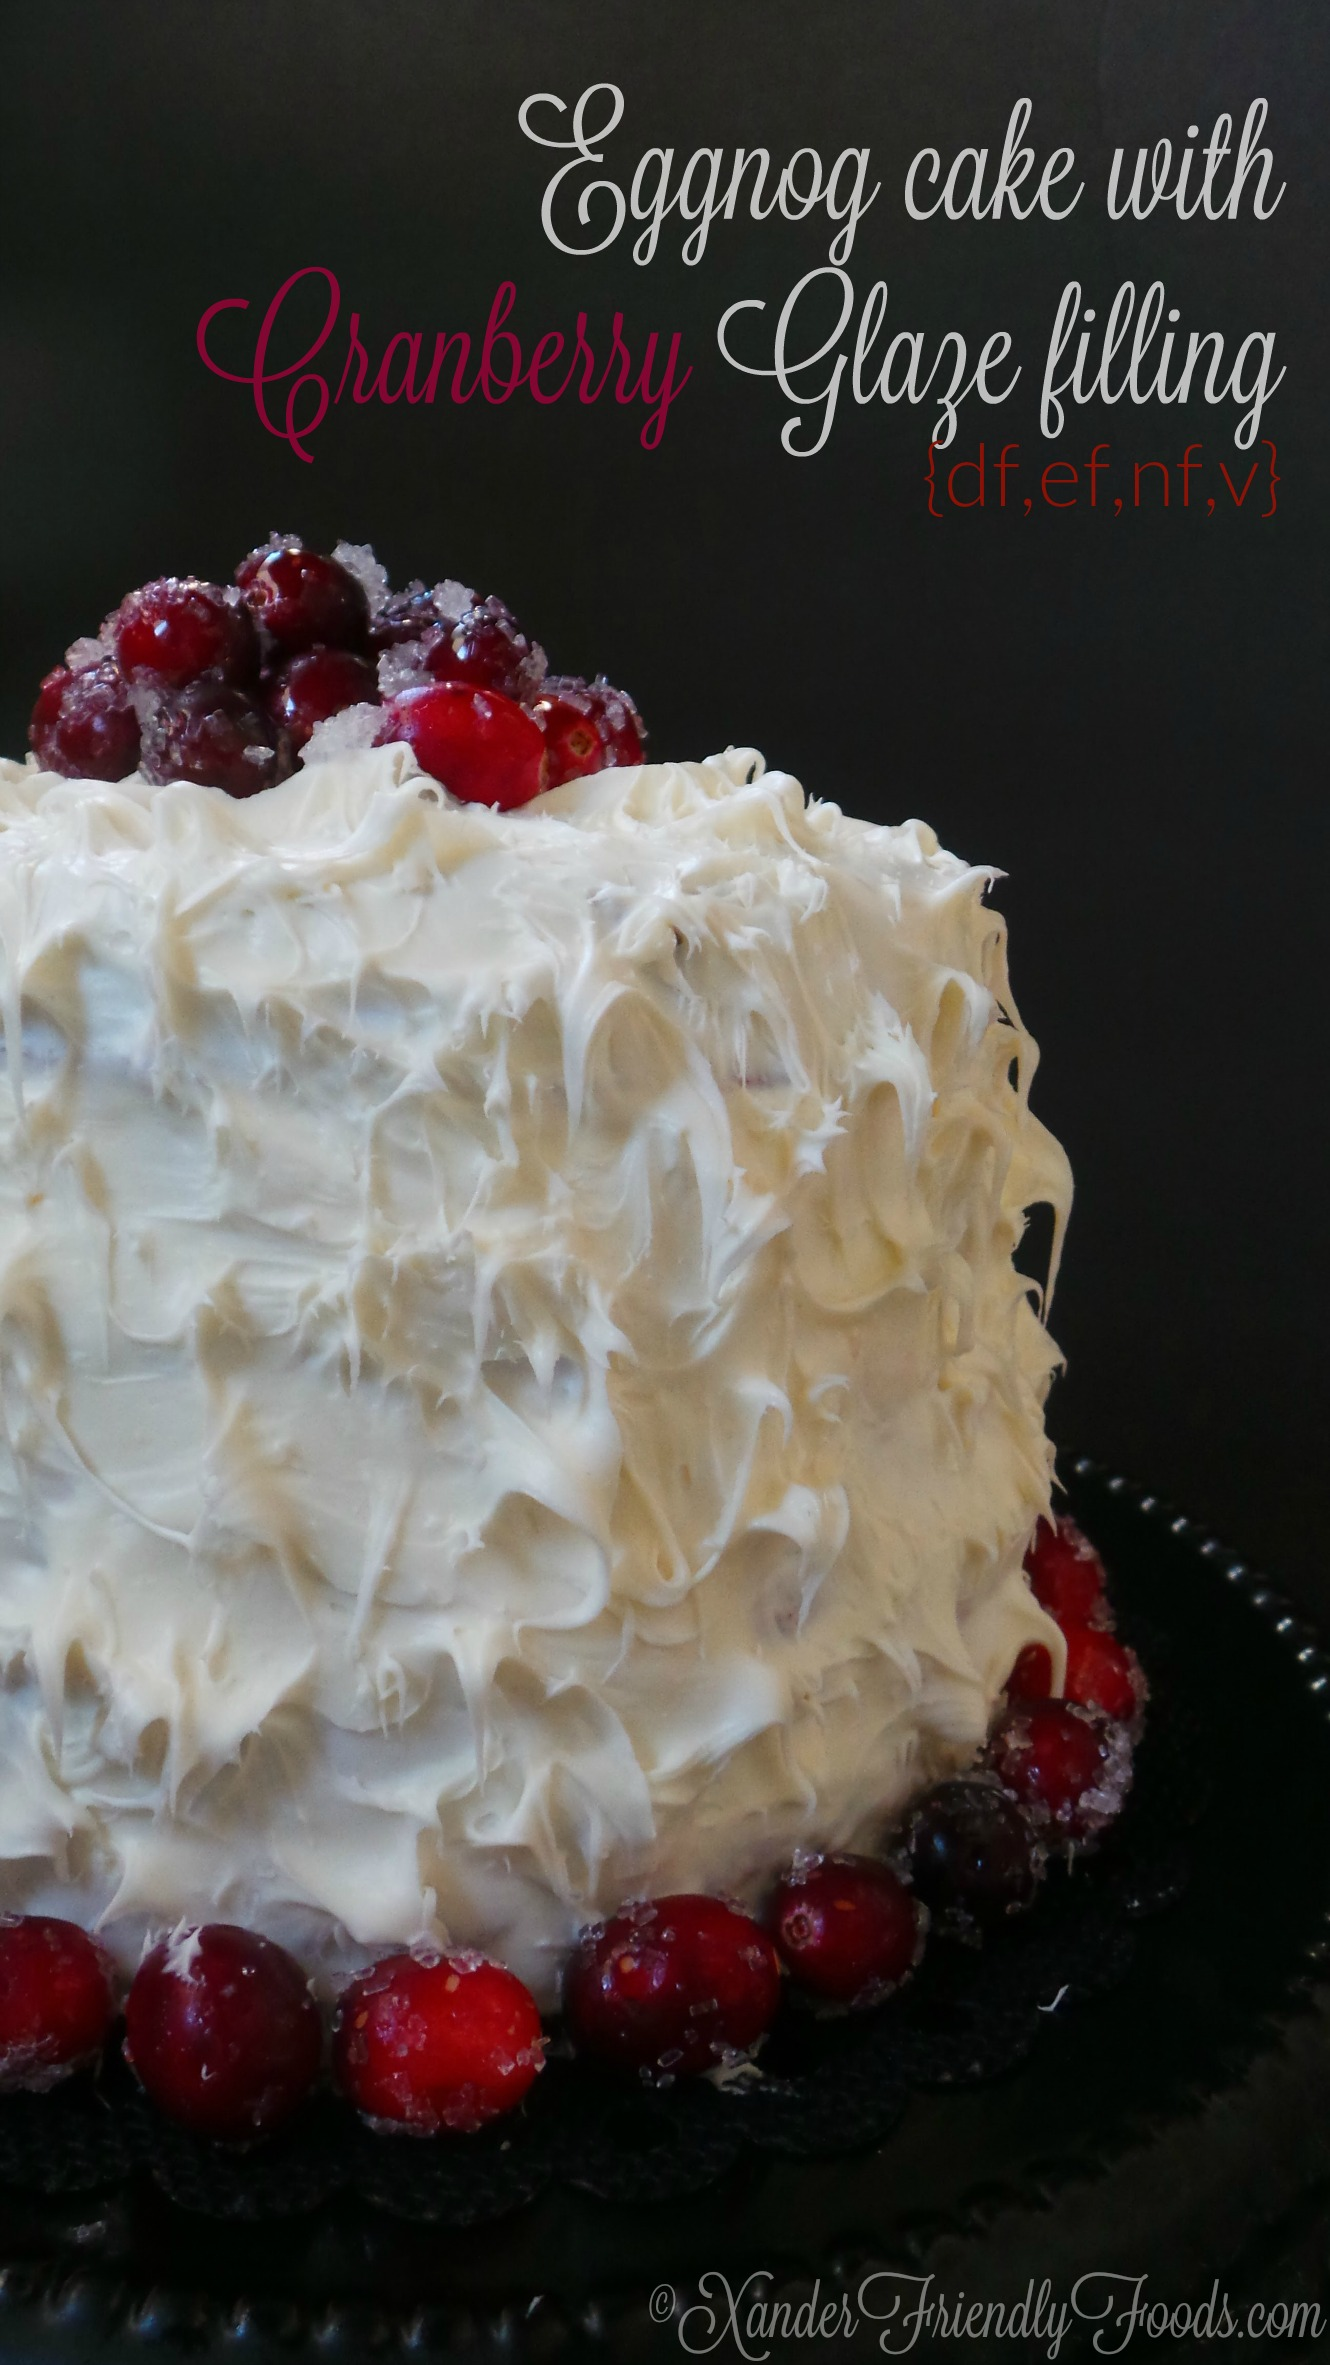 Almost too pretty to eat, but you'll want to anyways! Snowy white Eggnog flavored cake with layers of cranberry glaze for the perfect Holiday blend cake. V & free of dairy, eggs, soy & nuts